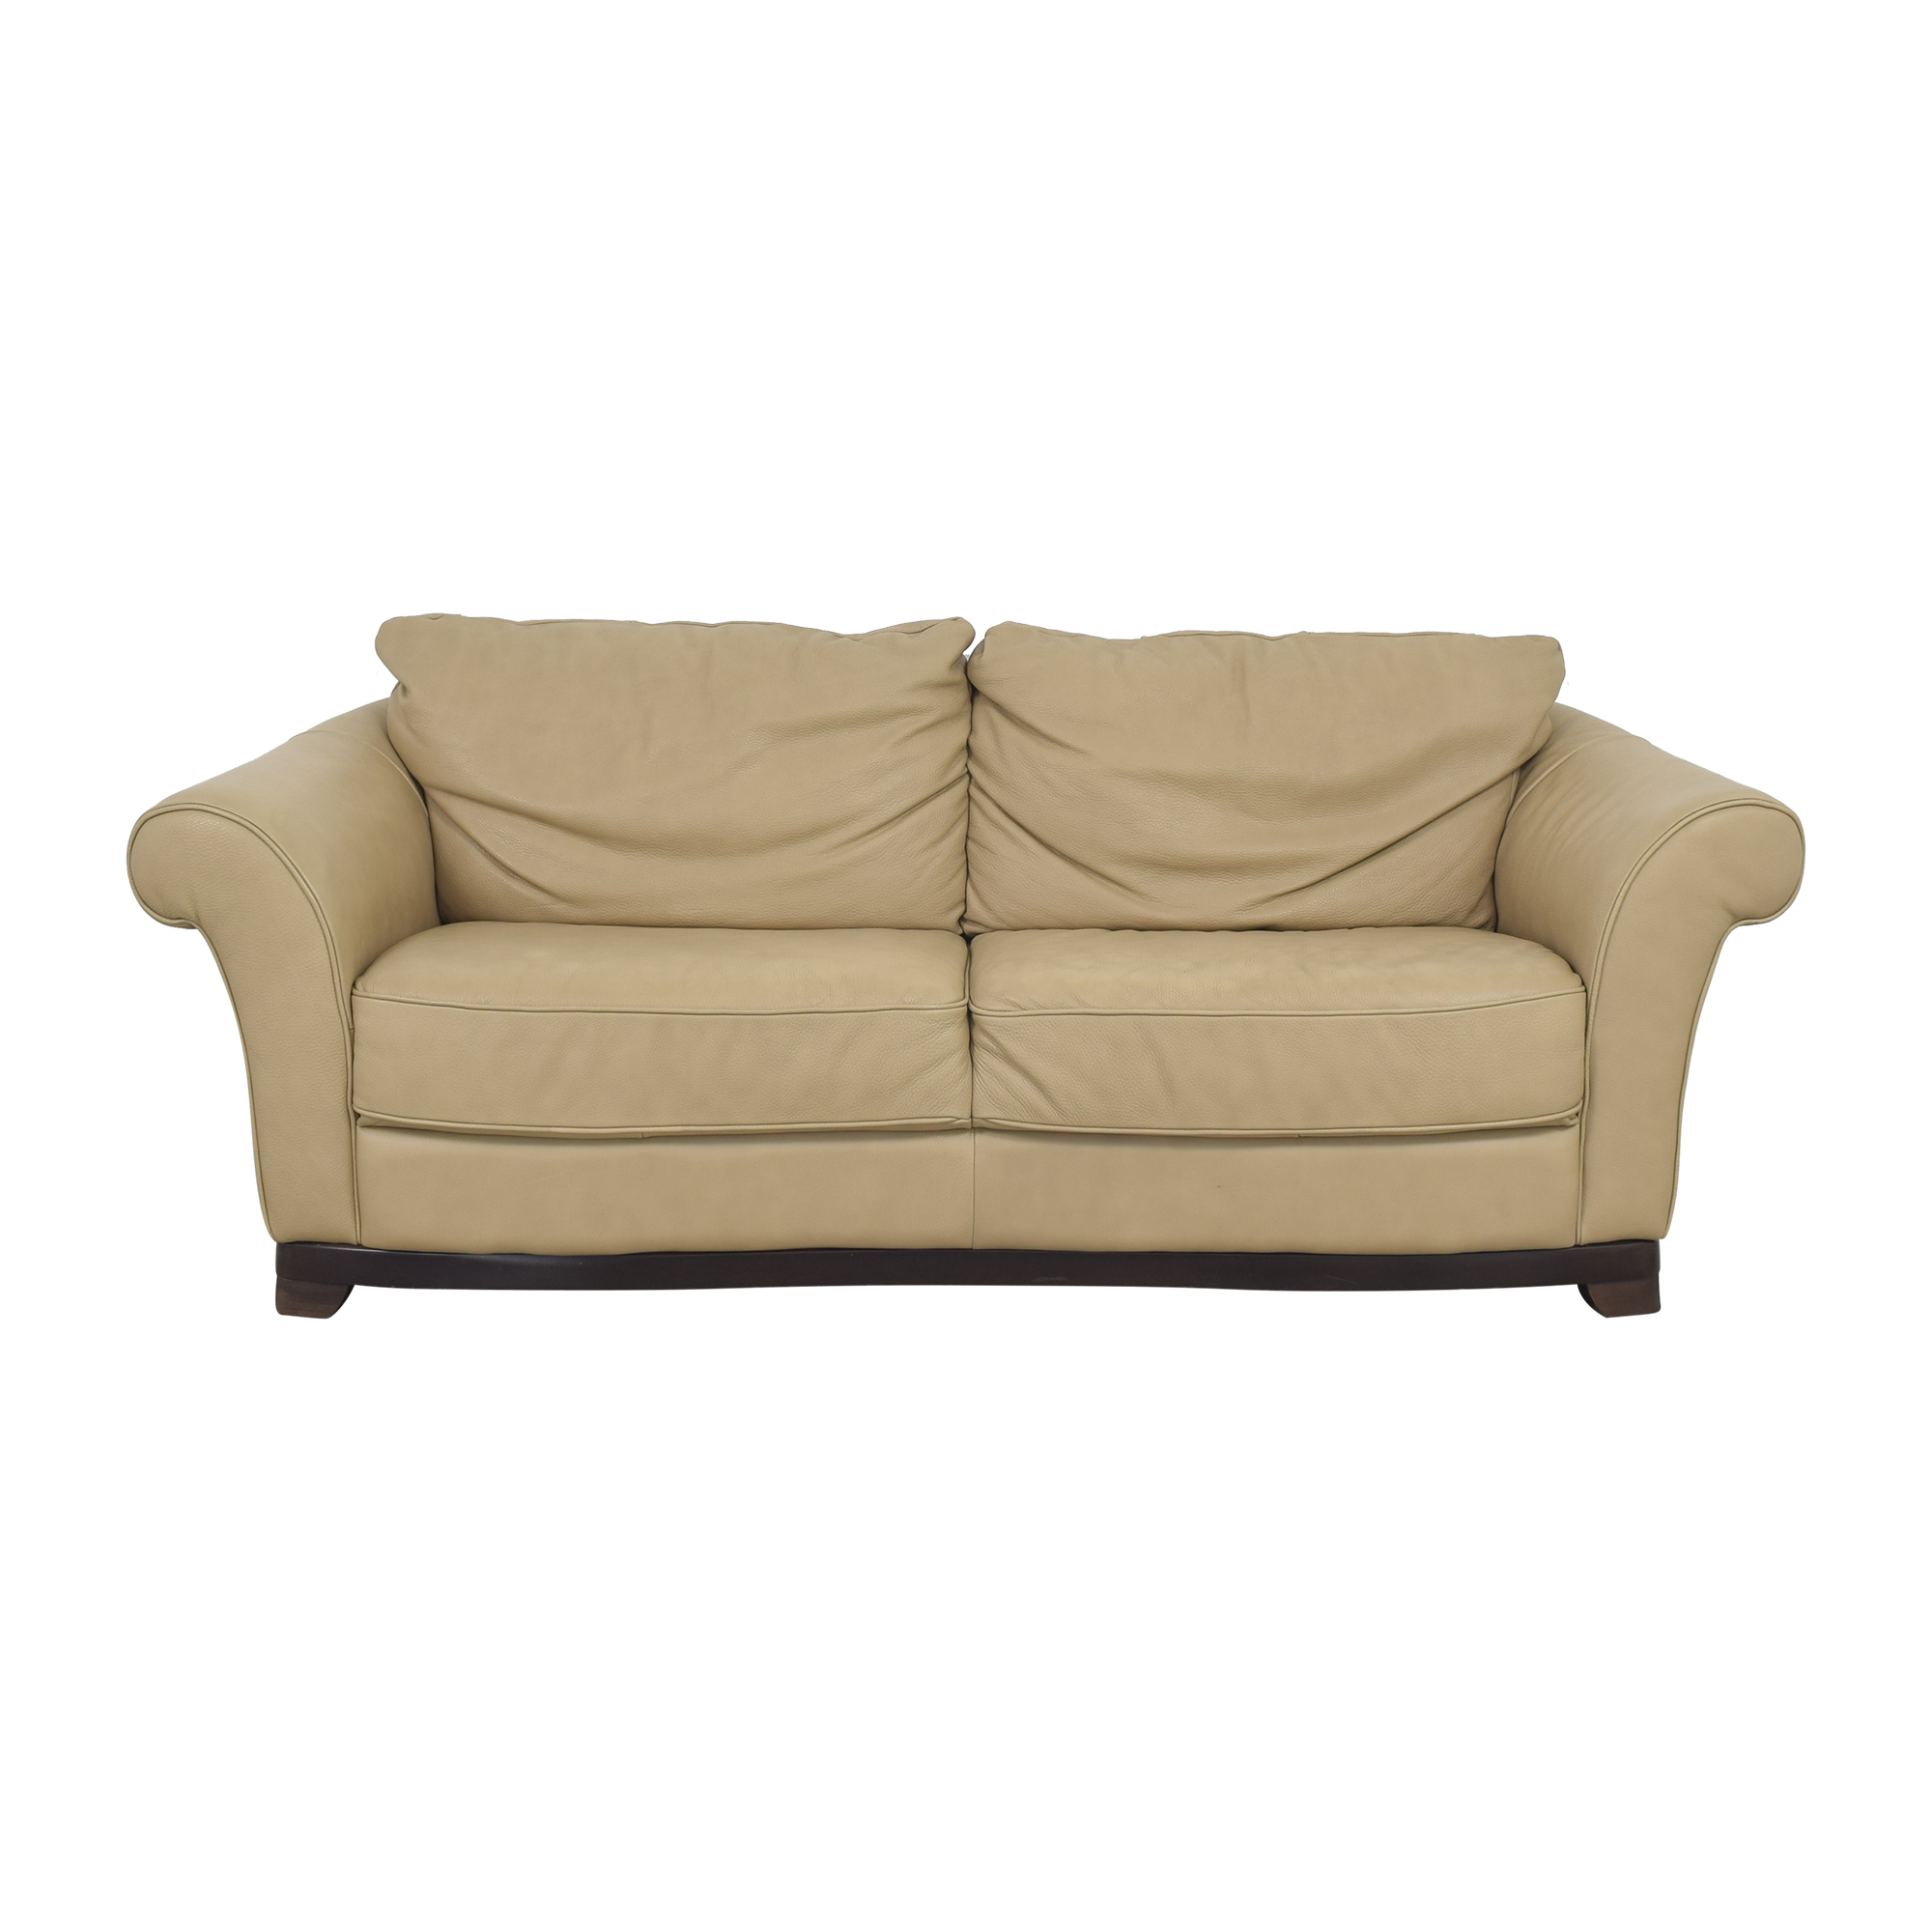 Natuzzi Natuzzi Two Cushion Sofa  ma